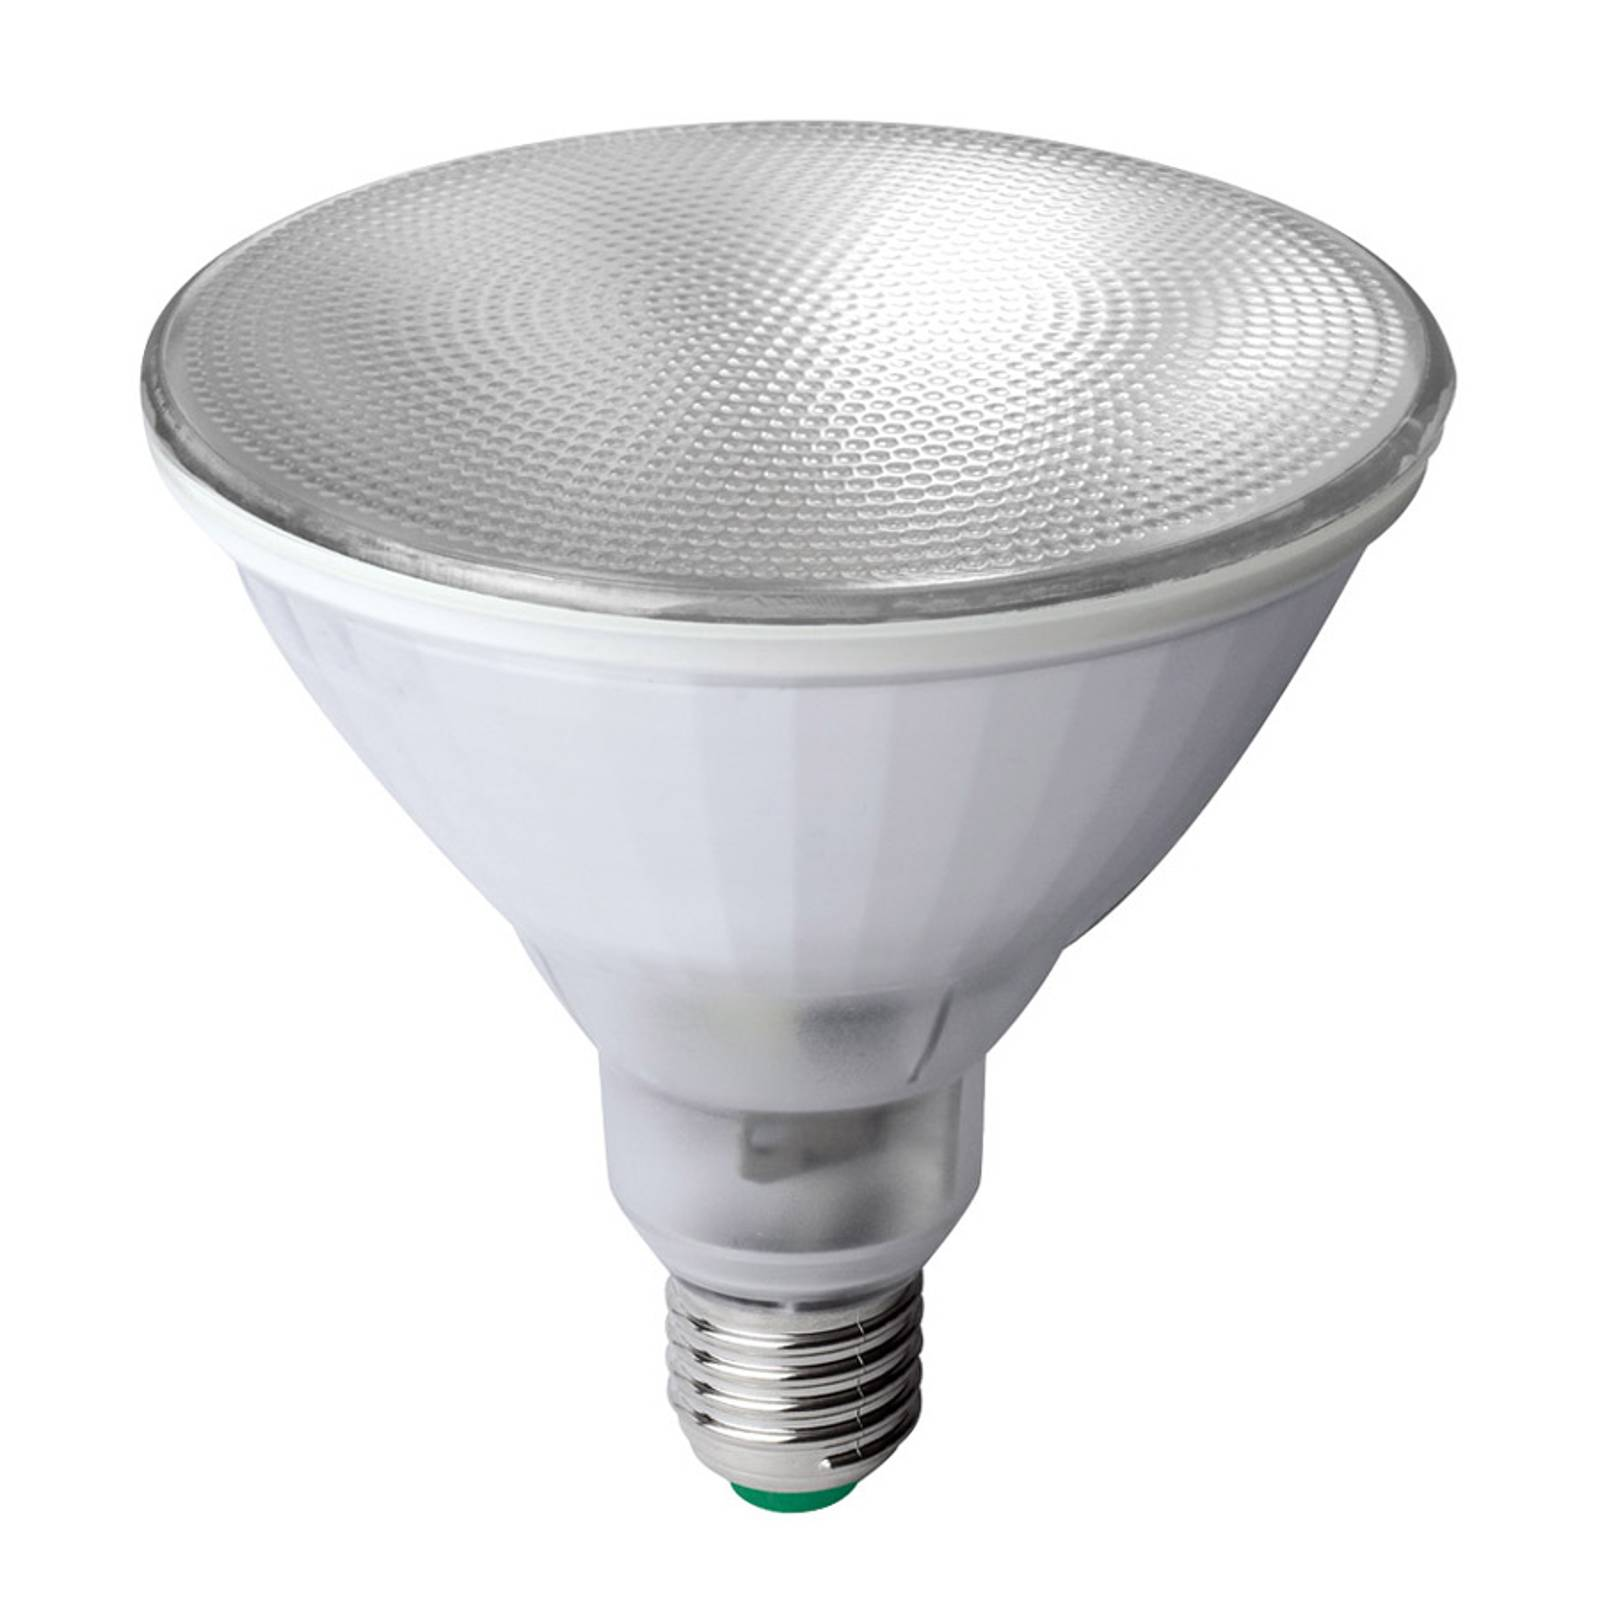 E27 8.5 W LED plant lamp, PAR38 35° from Megaman